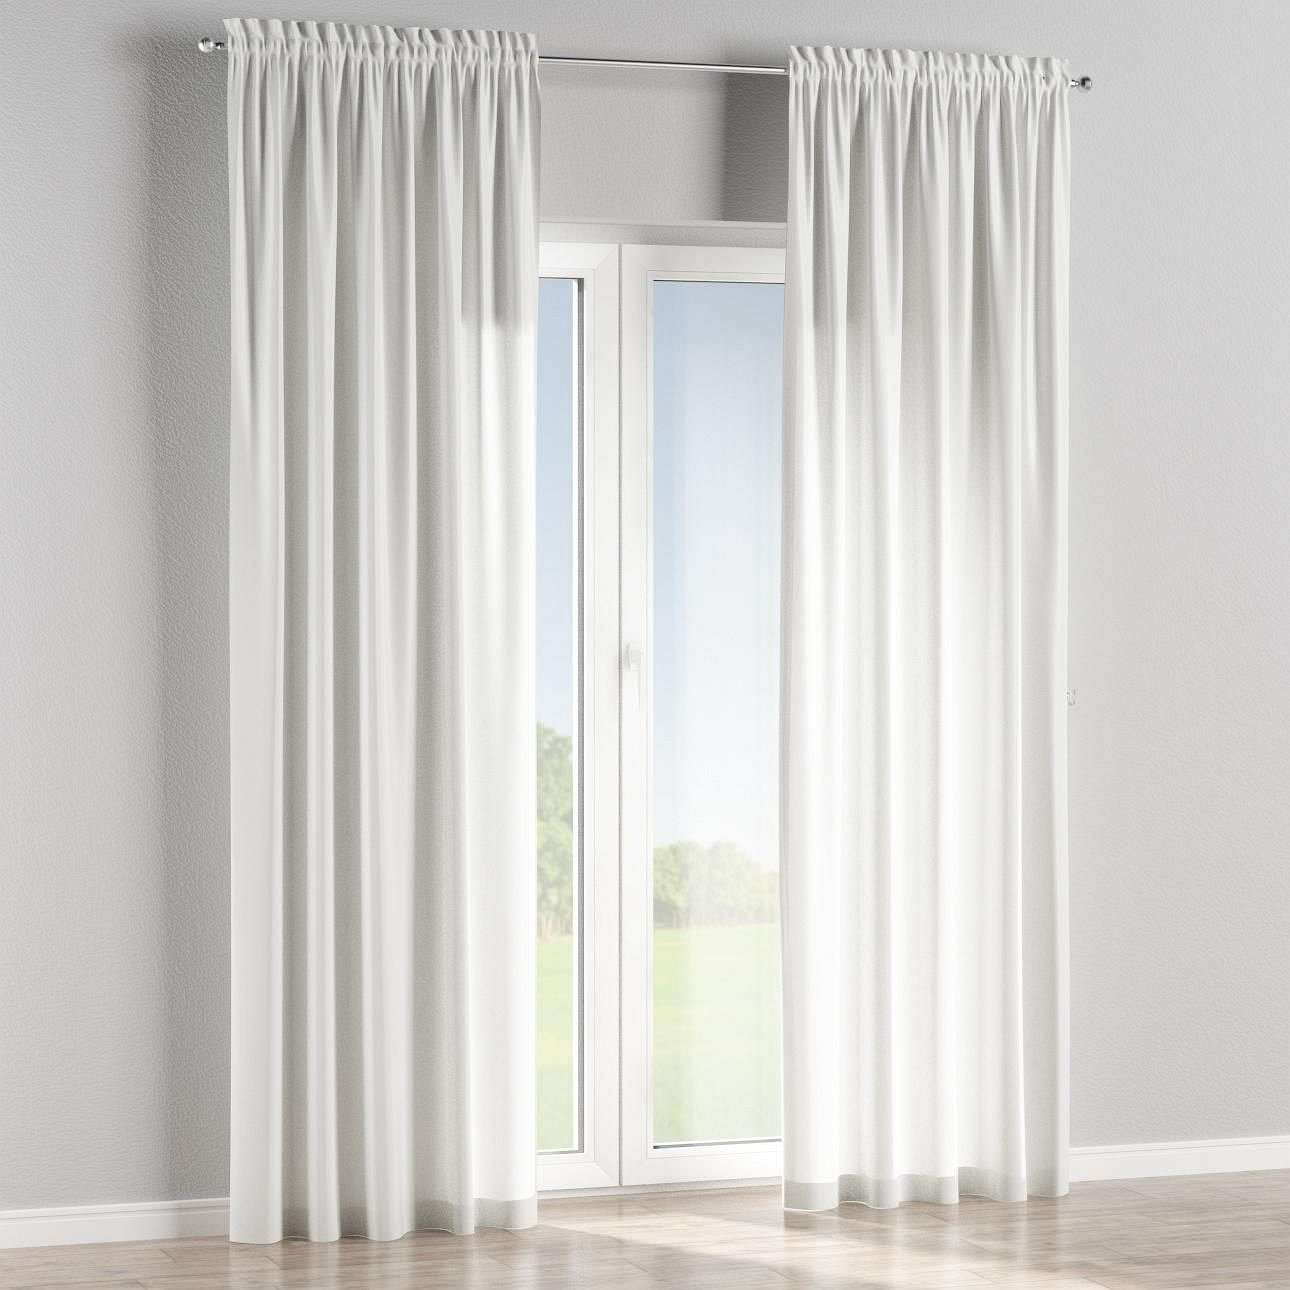 Slot and frill lined curtains in collection Marina, fabric: 140-14